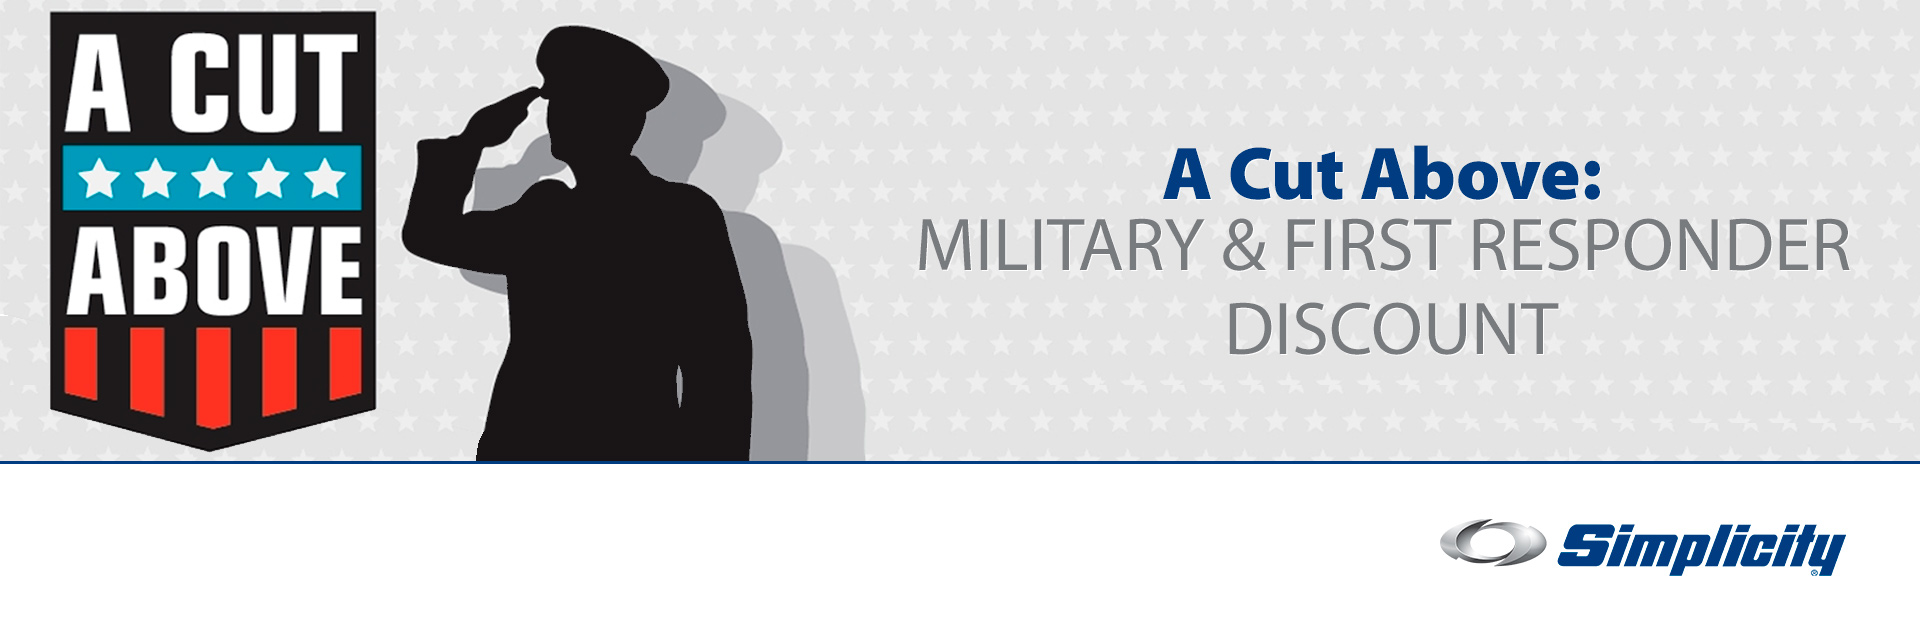 Simplicity: A CUT ABOVE: MILITARY & FIRST RESPONDER DISCOUNT